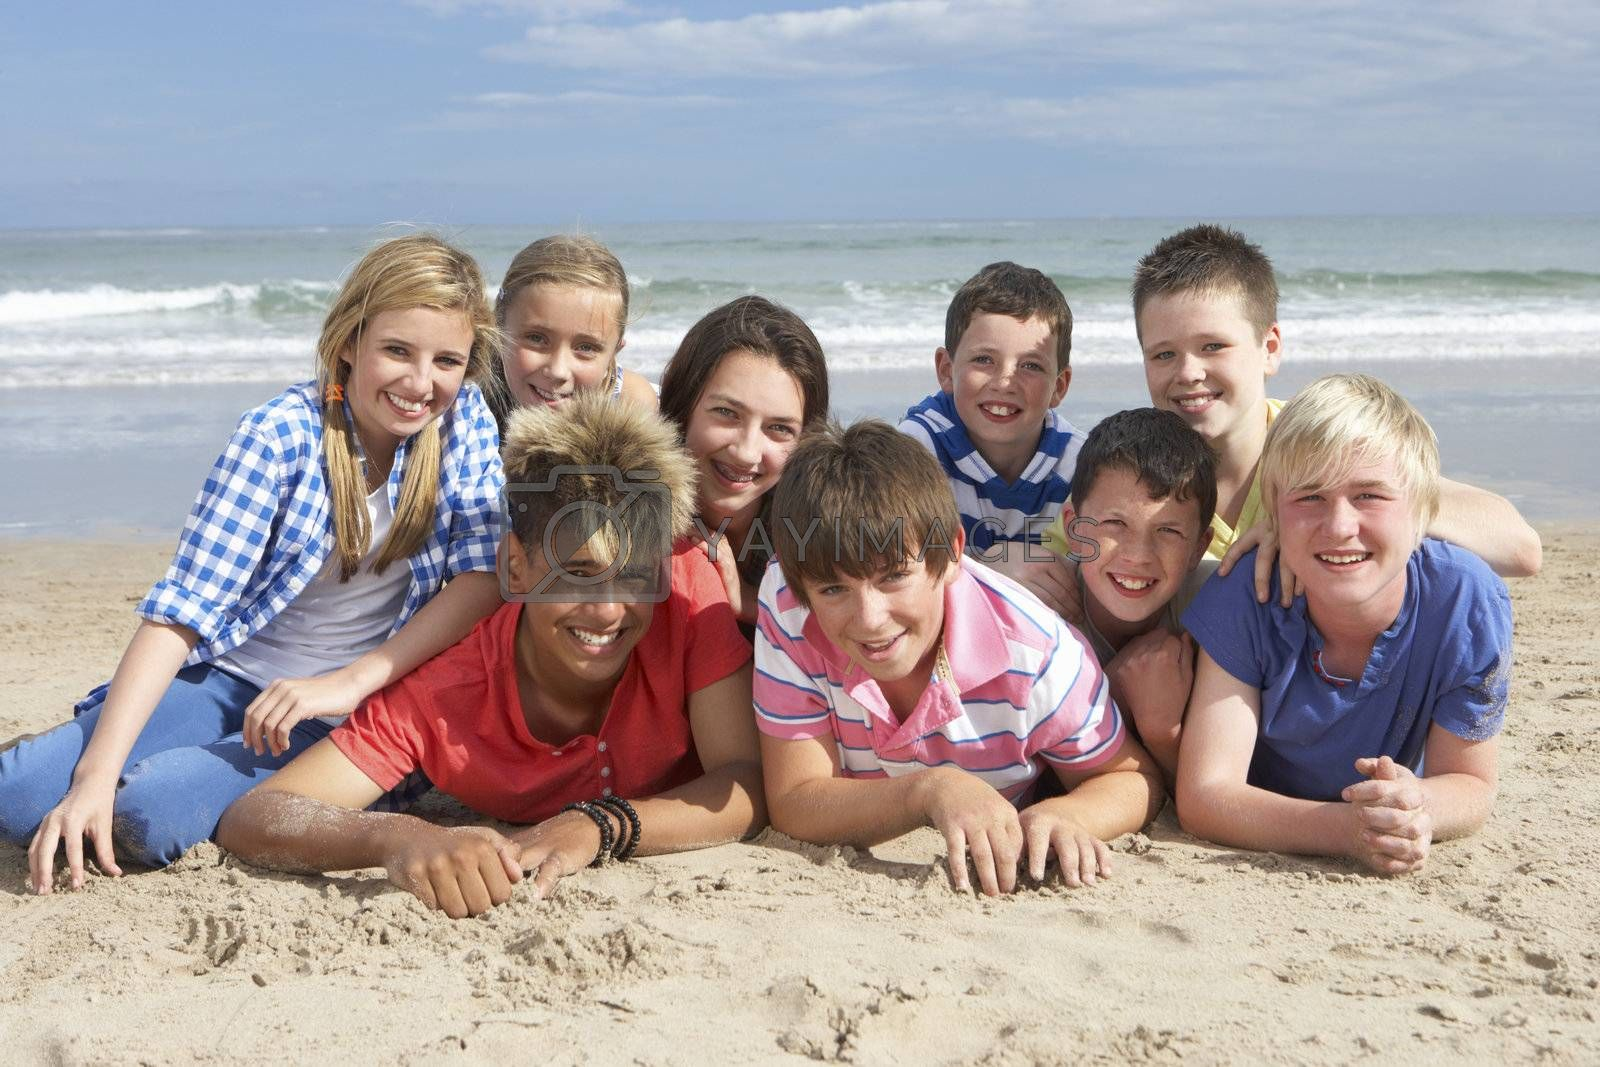 Teenagers together